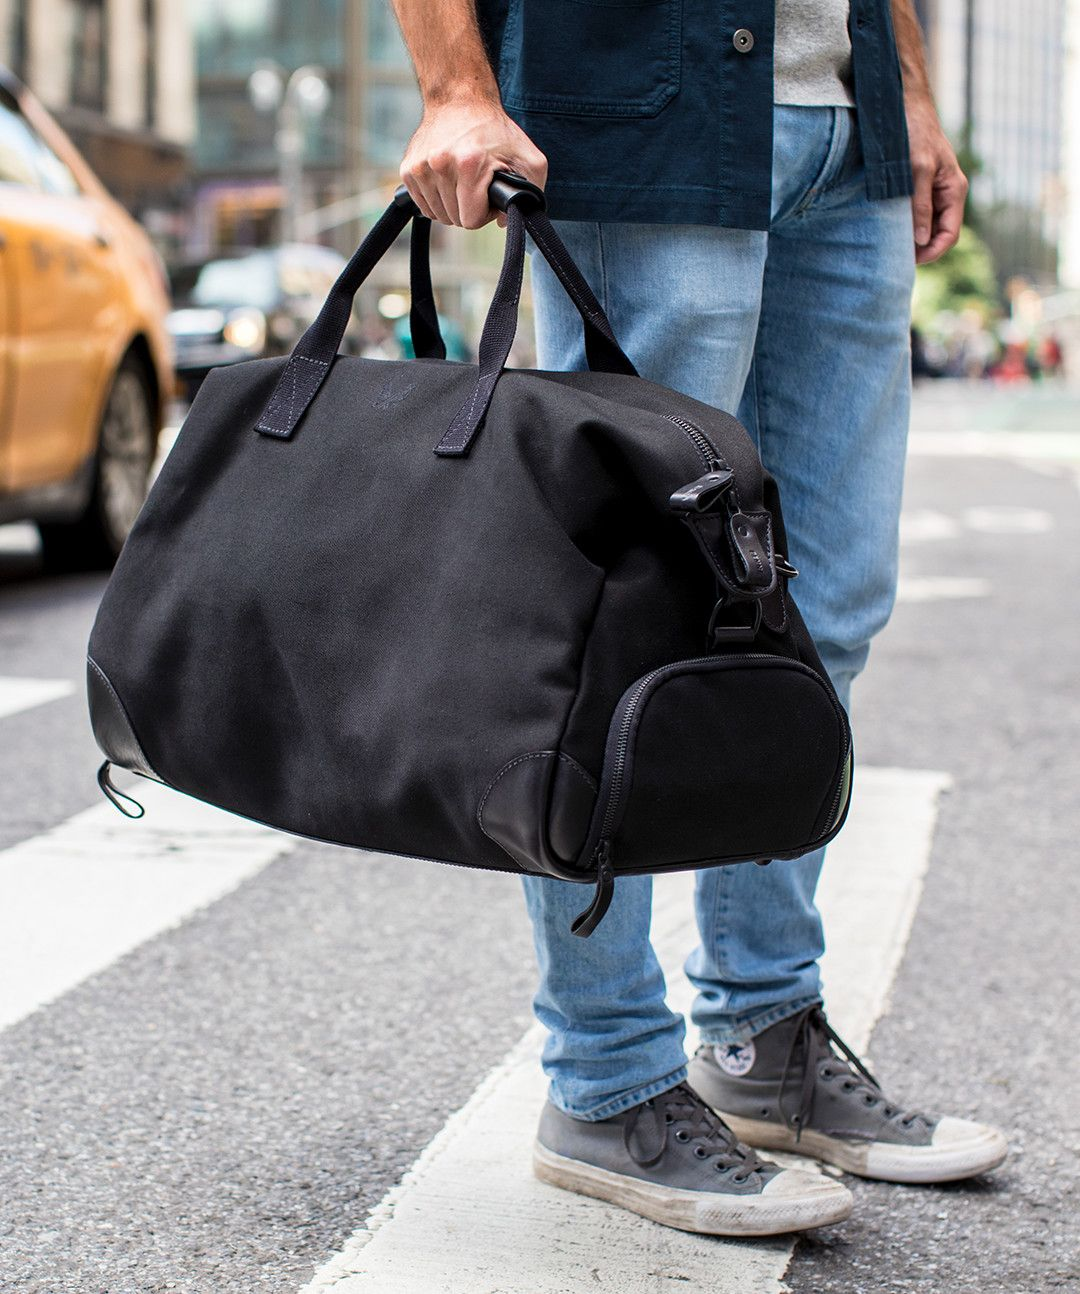 Bennett Winch and Esquire Made the Perfect Bag for Every Summer Getaway